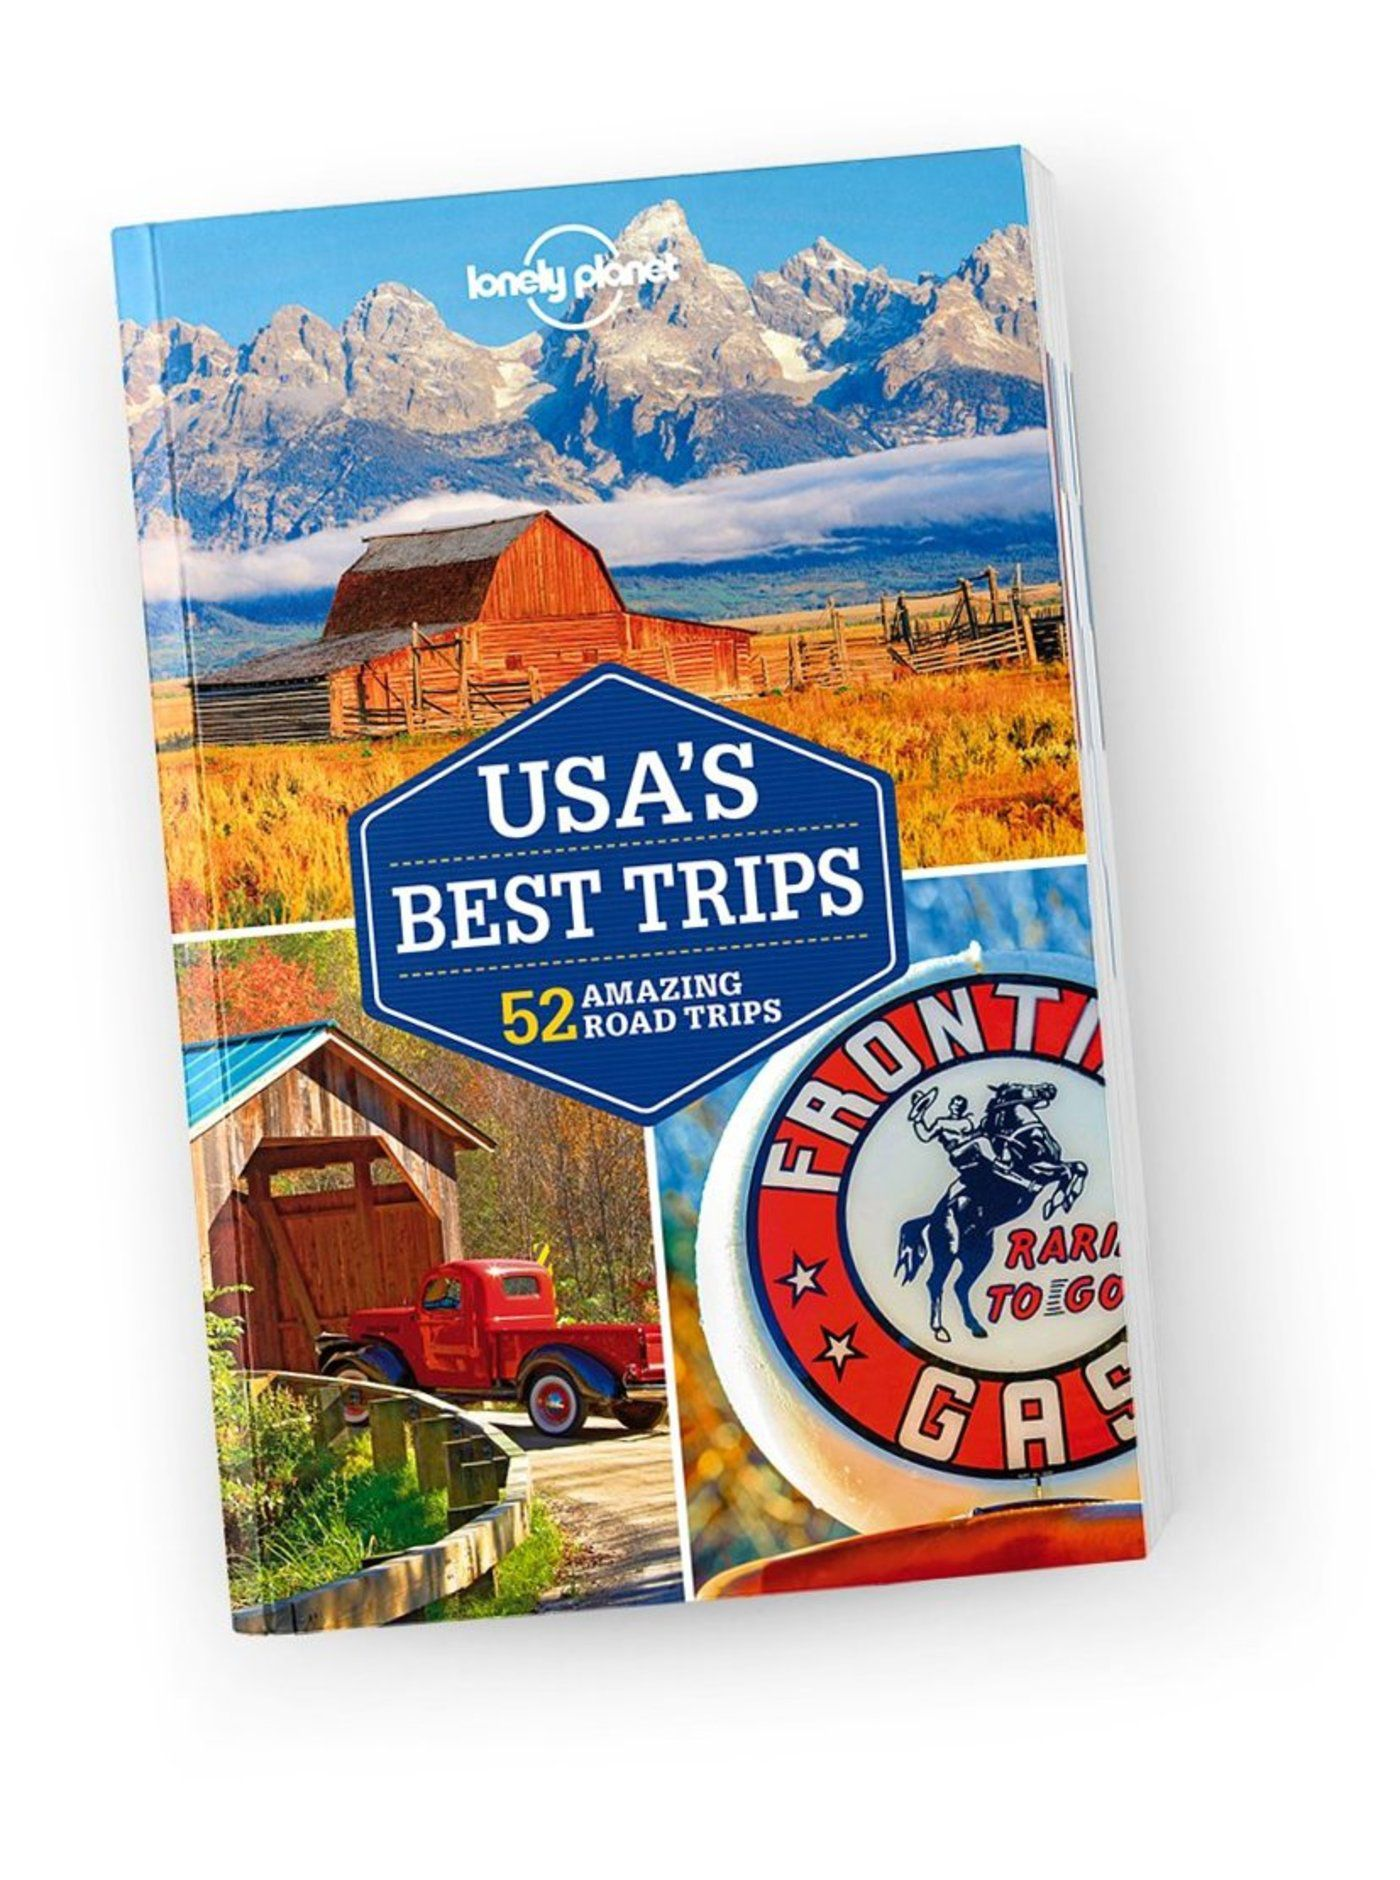 USA's Best Trips - Pacific Northwest Trips (PDF Chapter), 3rd Edition Mar 2018 by Lonely Planet 9781786573599011